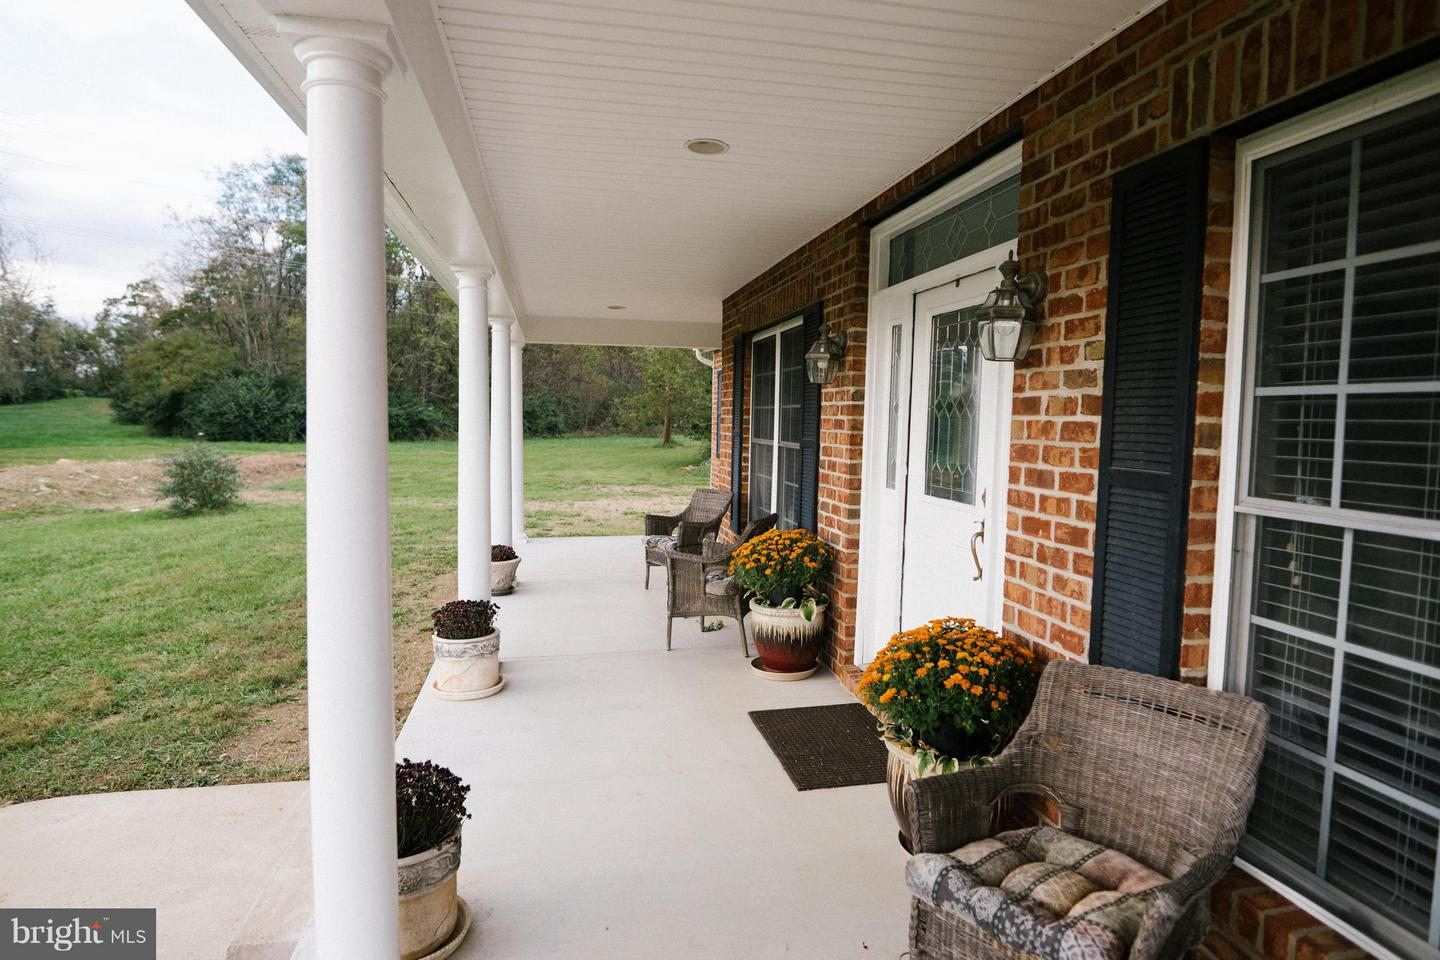 Additional photo for property listing at 382 Joline Dr Clear Brook, Virginia 22624 United States